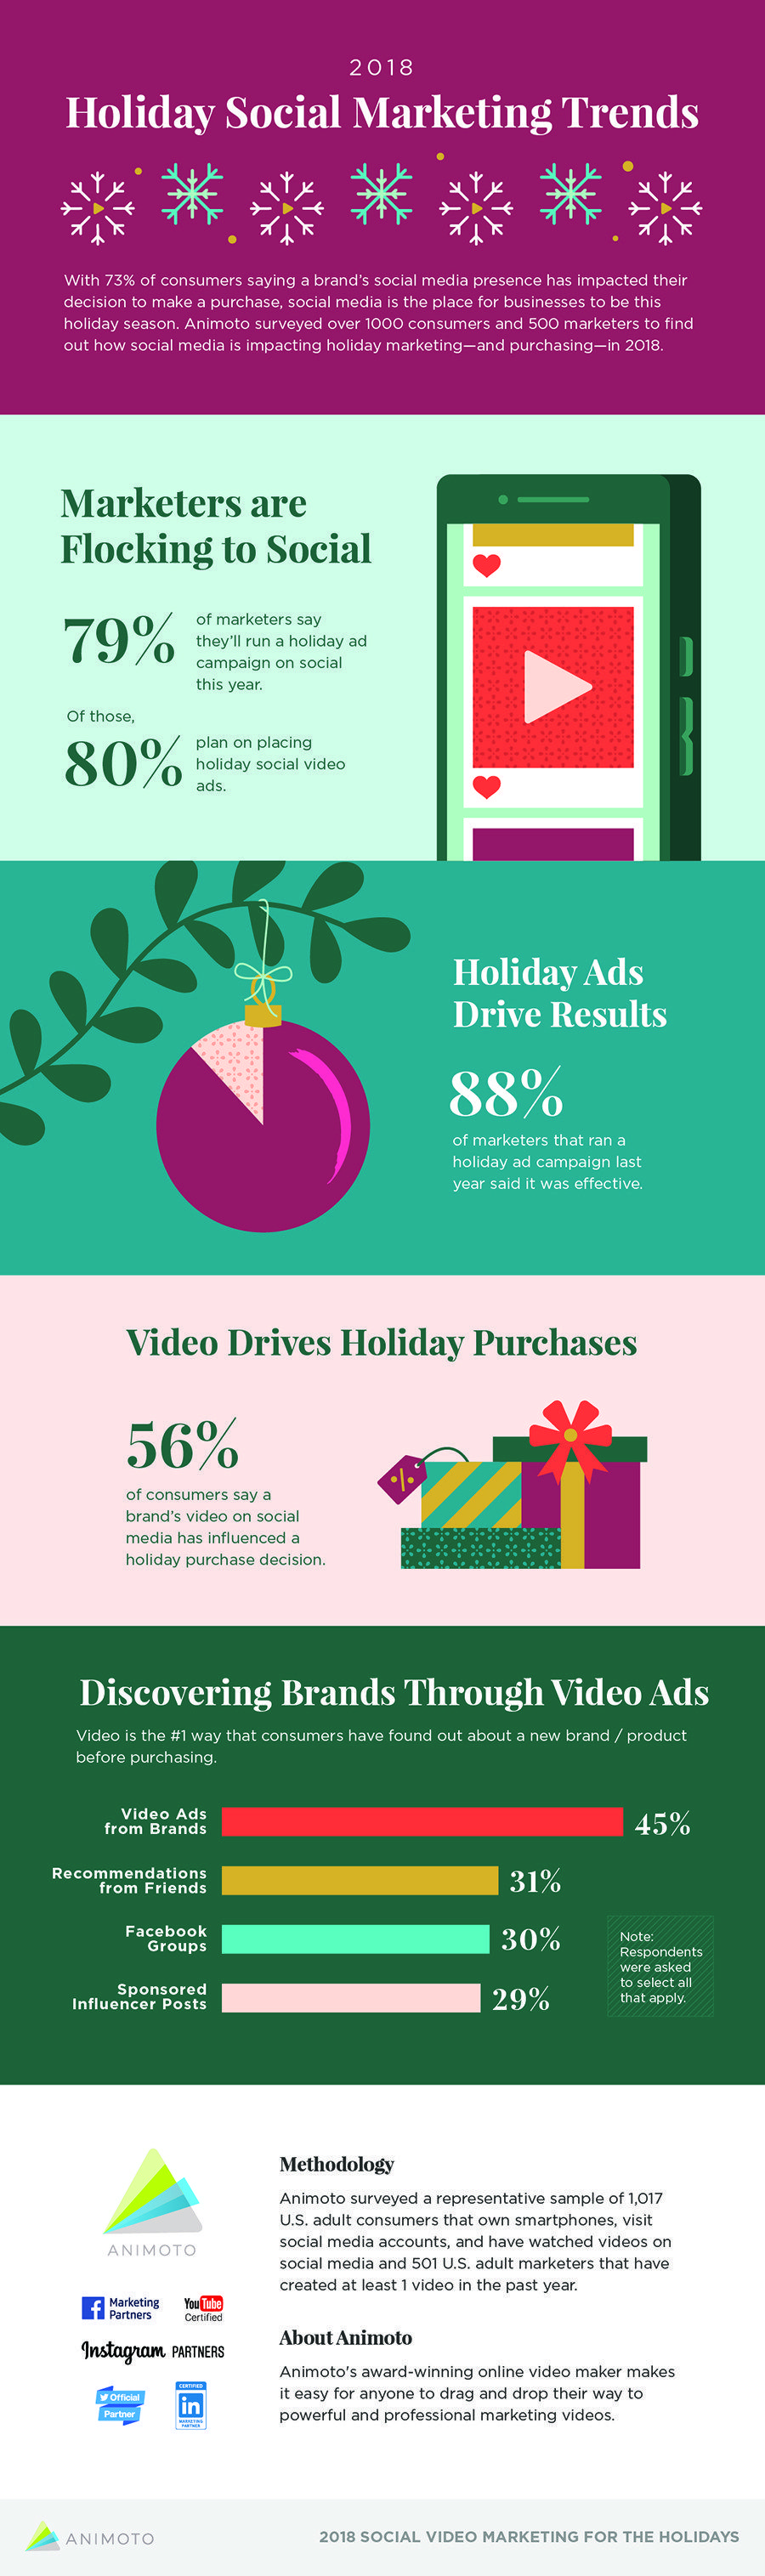 2018-holiday-marketing-trends-infographic-compressor